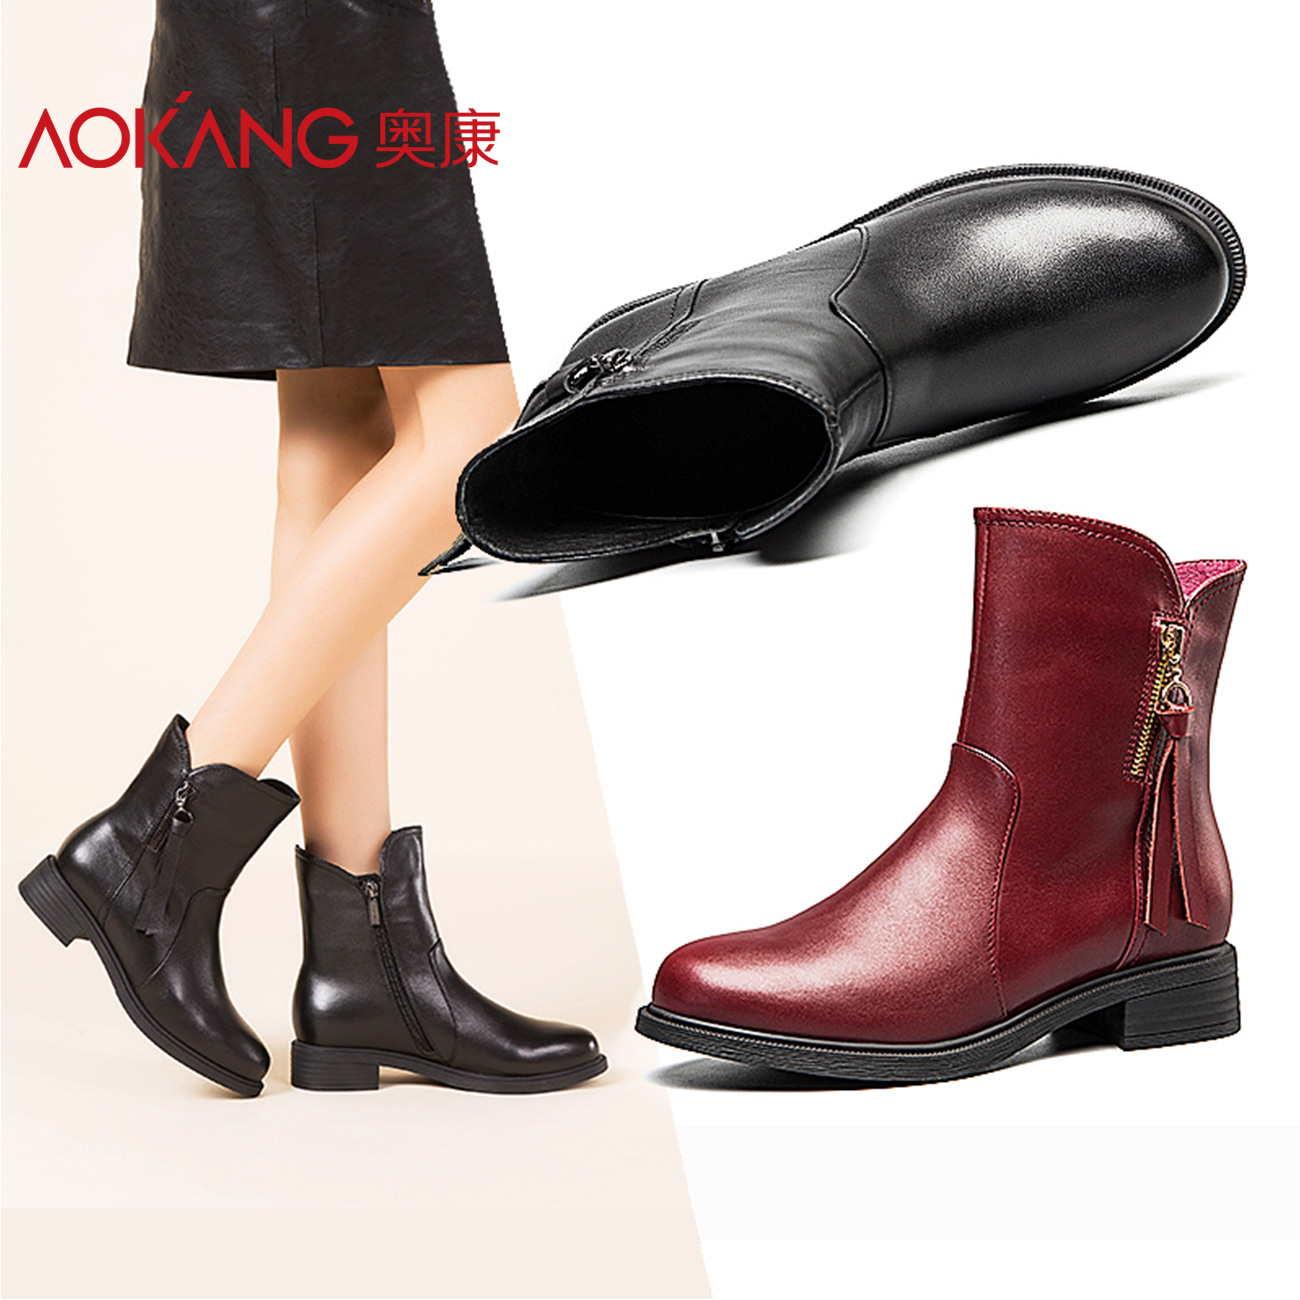 Aokang women's shoes winter new zipper thick with fashion casual boots women's boots